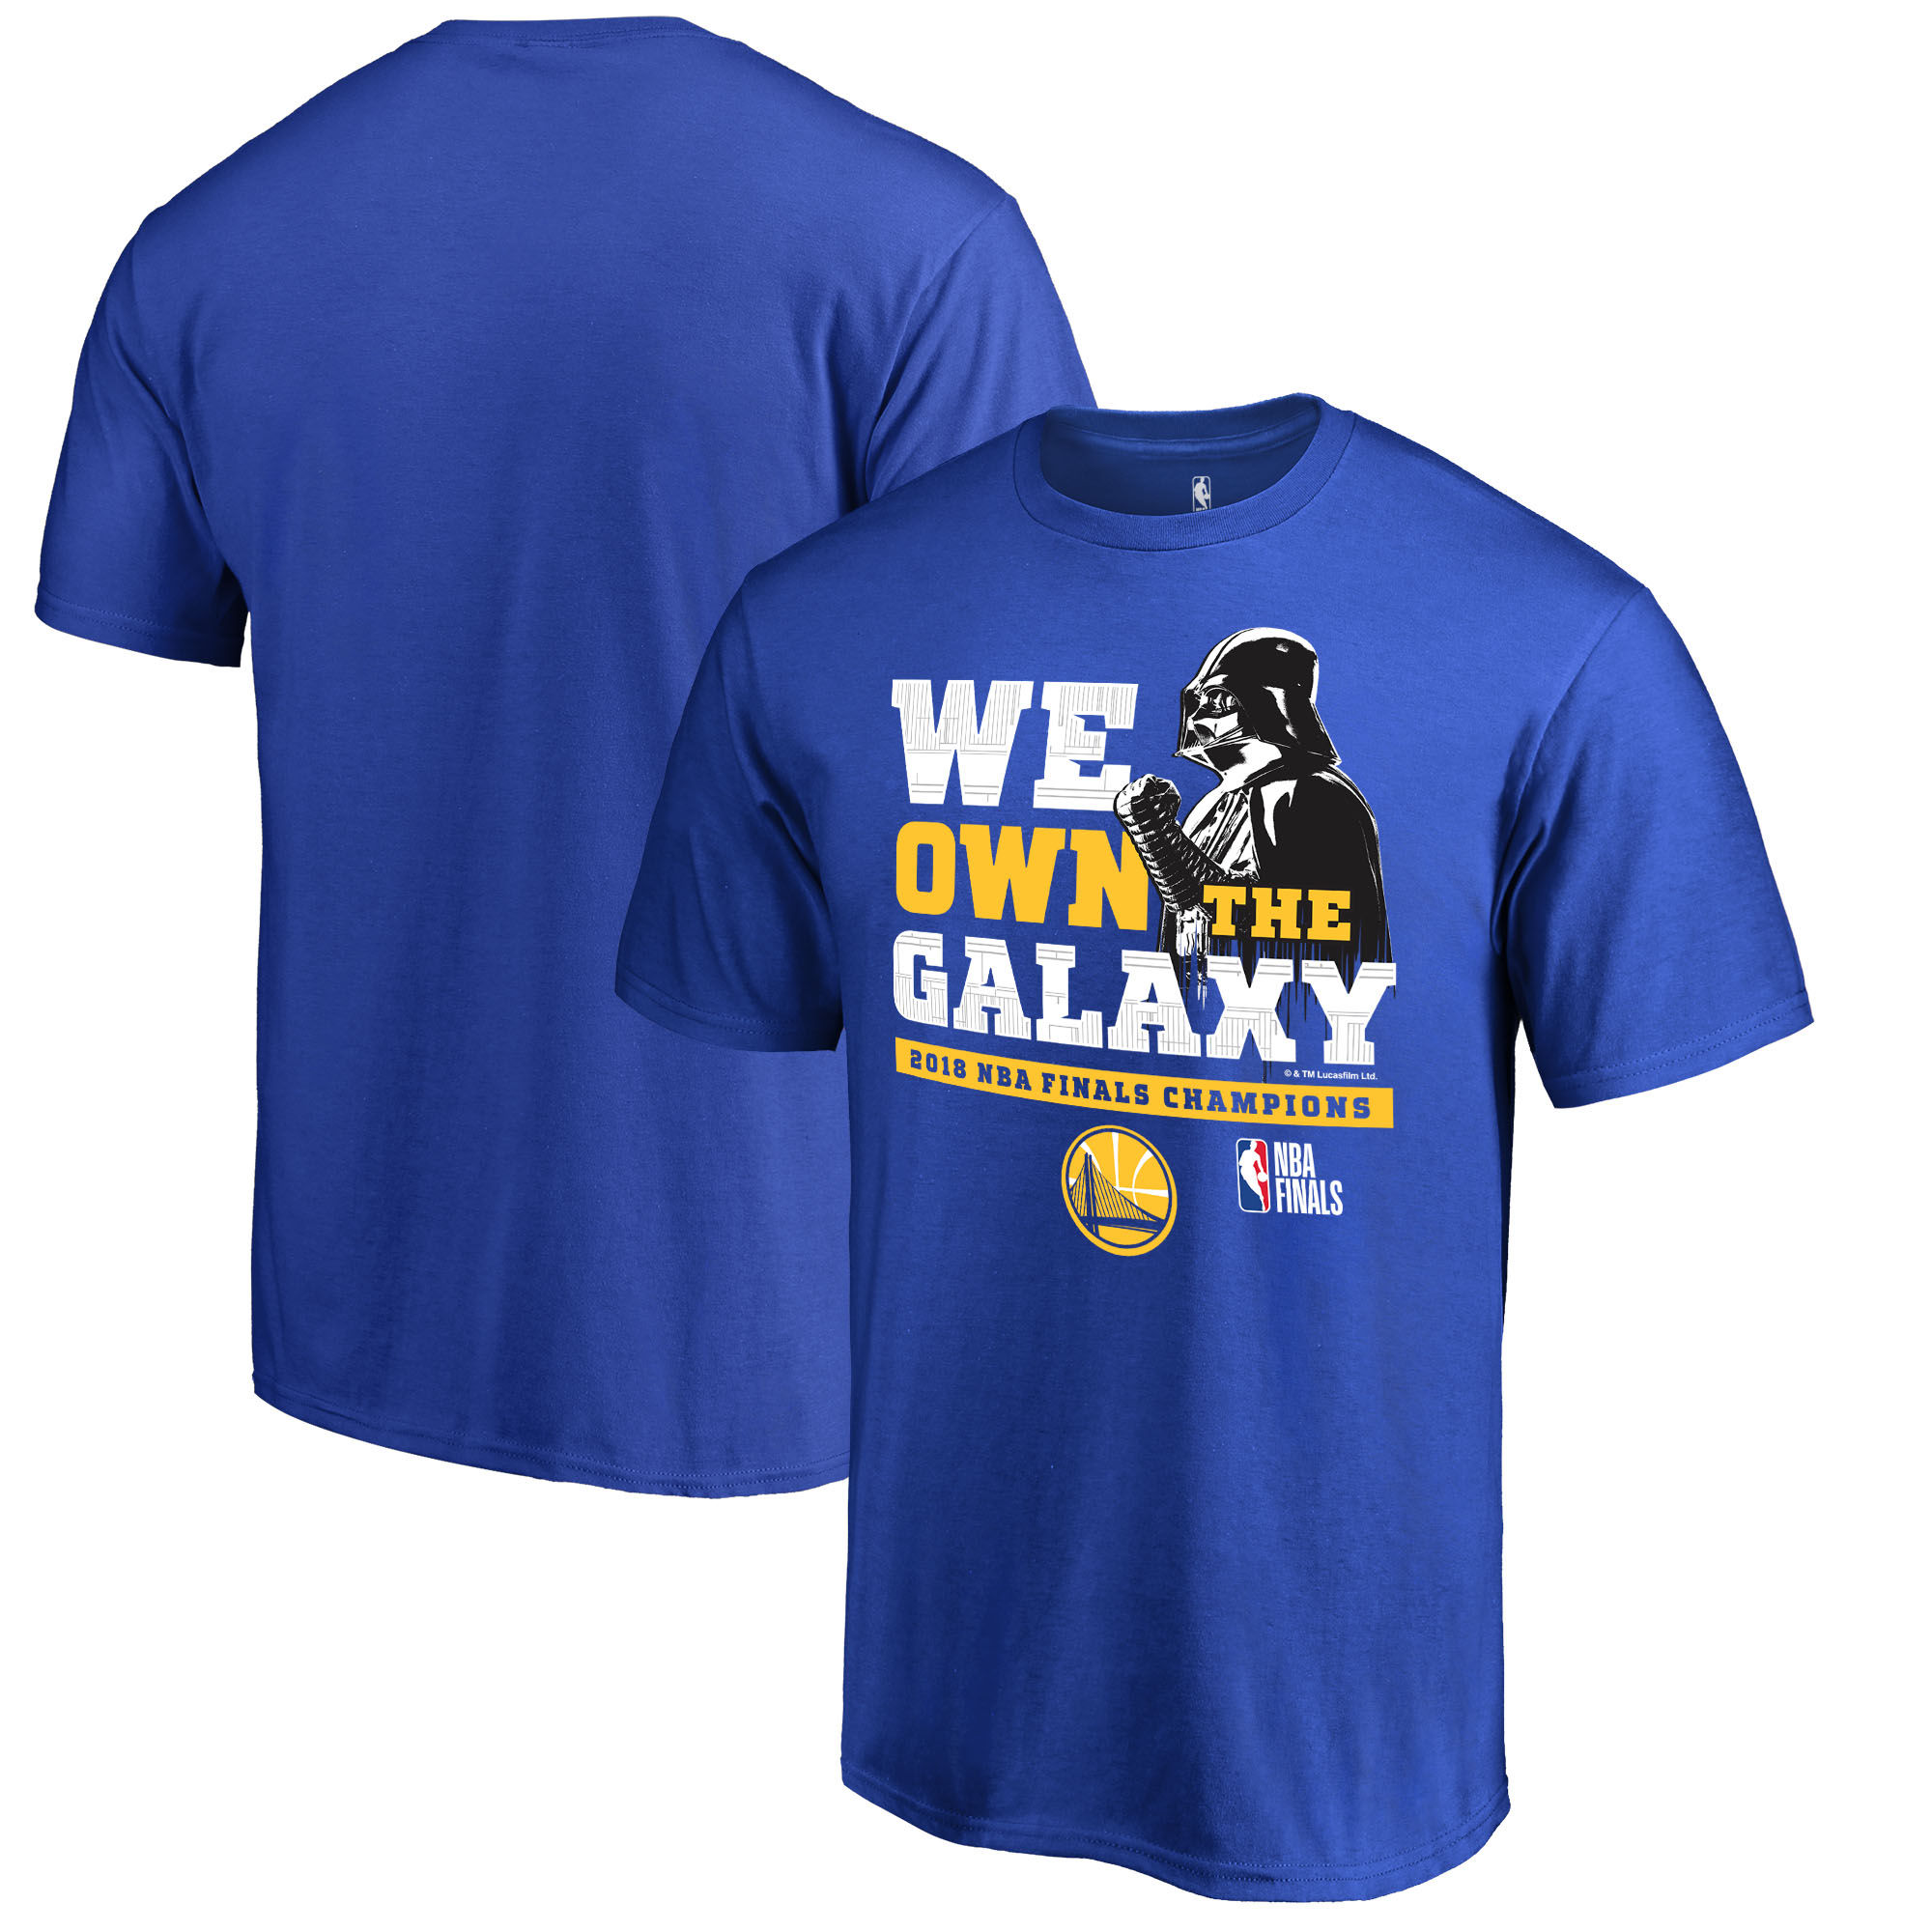 Golden State Warriors Fanatics Branded 2018 NBA Finals Champions Star Wars Own the Galaxy T-Shirt Royal